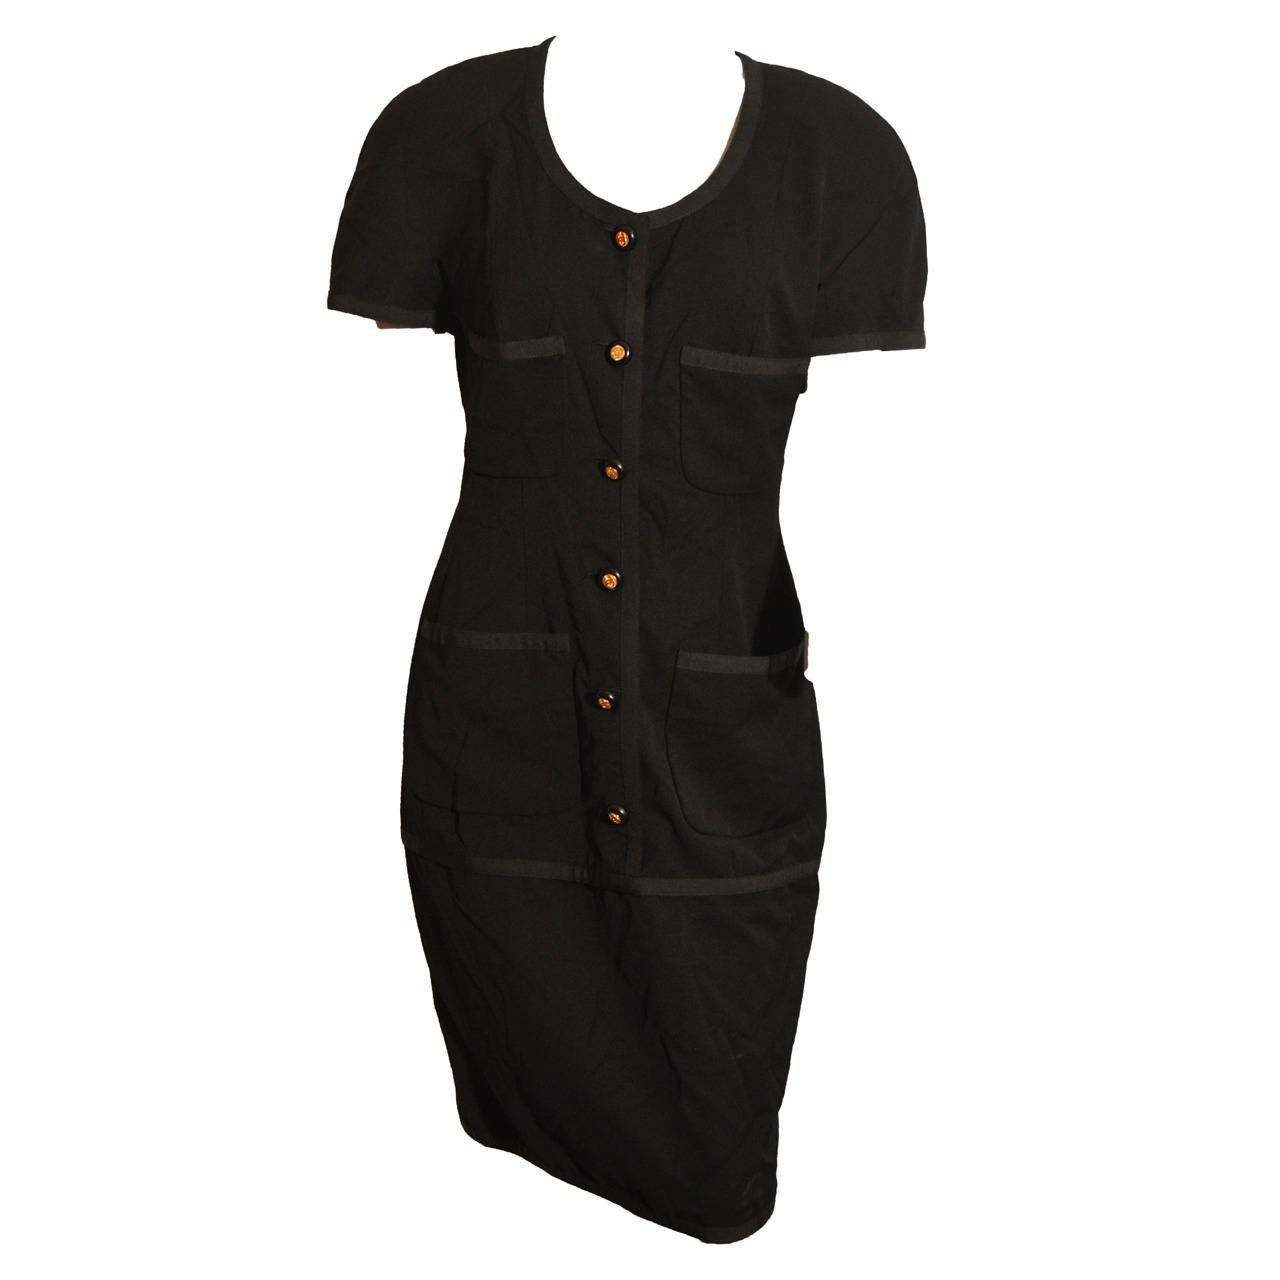 This black 1980's Chanel dress has a 6-button front and 4 pockets. It features ribbed piping, a drop waist skirt and black silk lining. The dress is tagged a size 42.